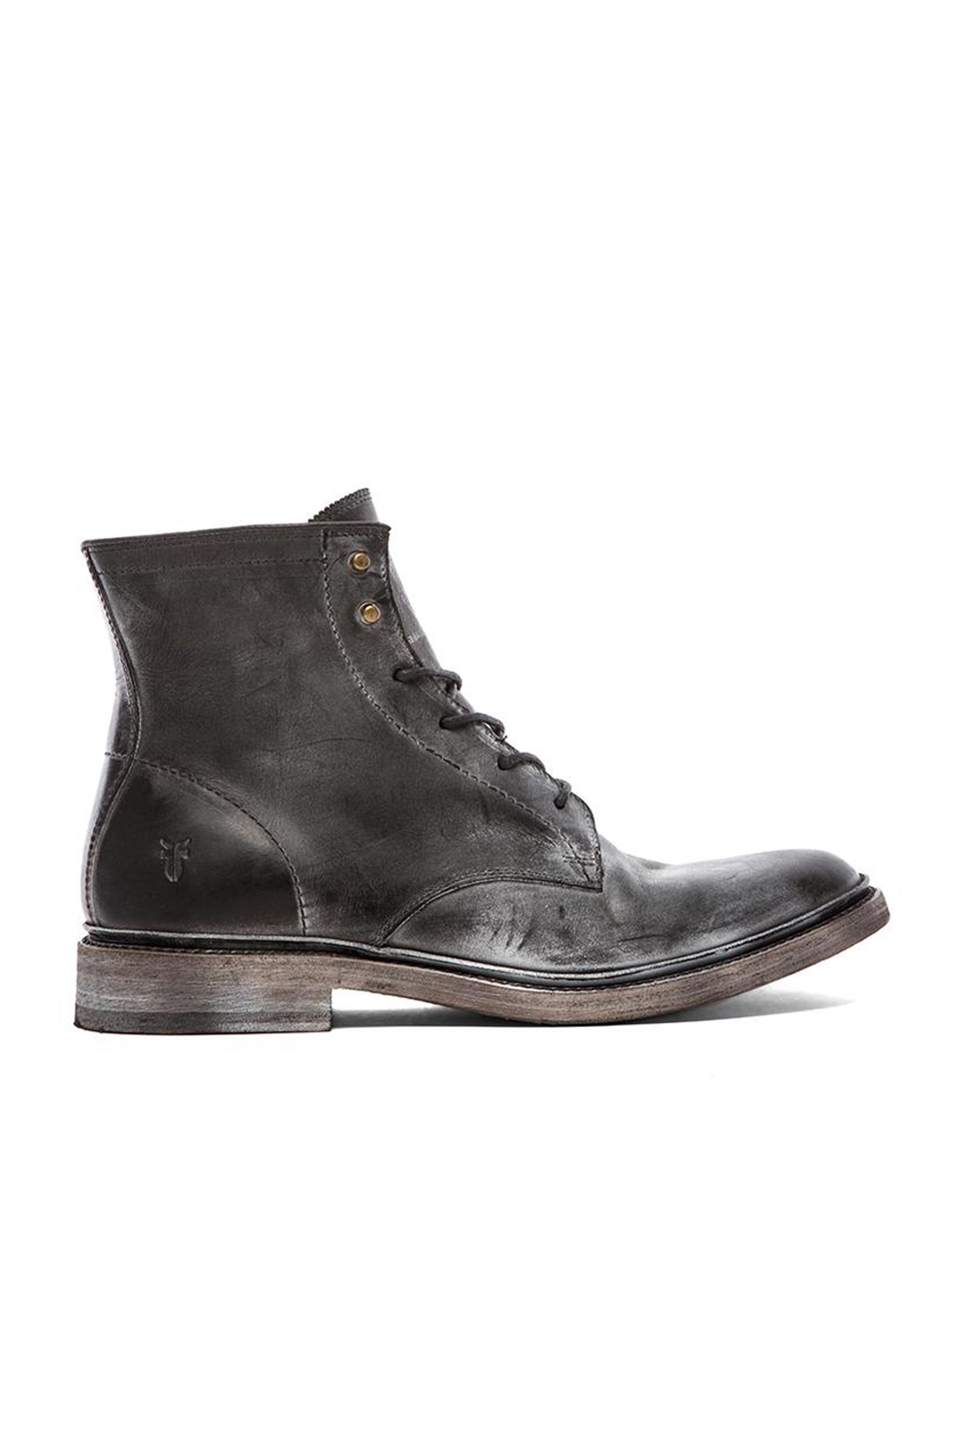 Frye James Lace Up Boot in Black